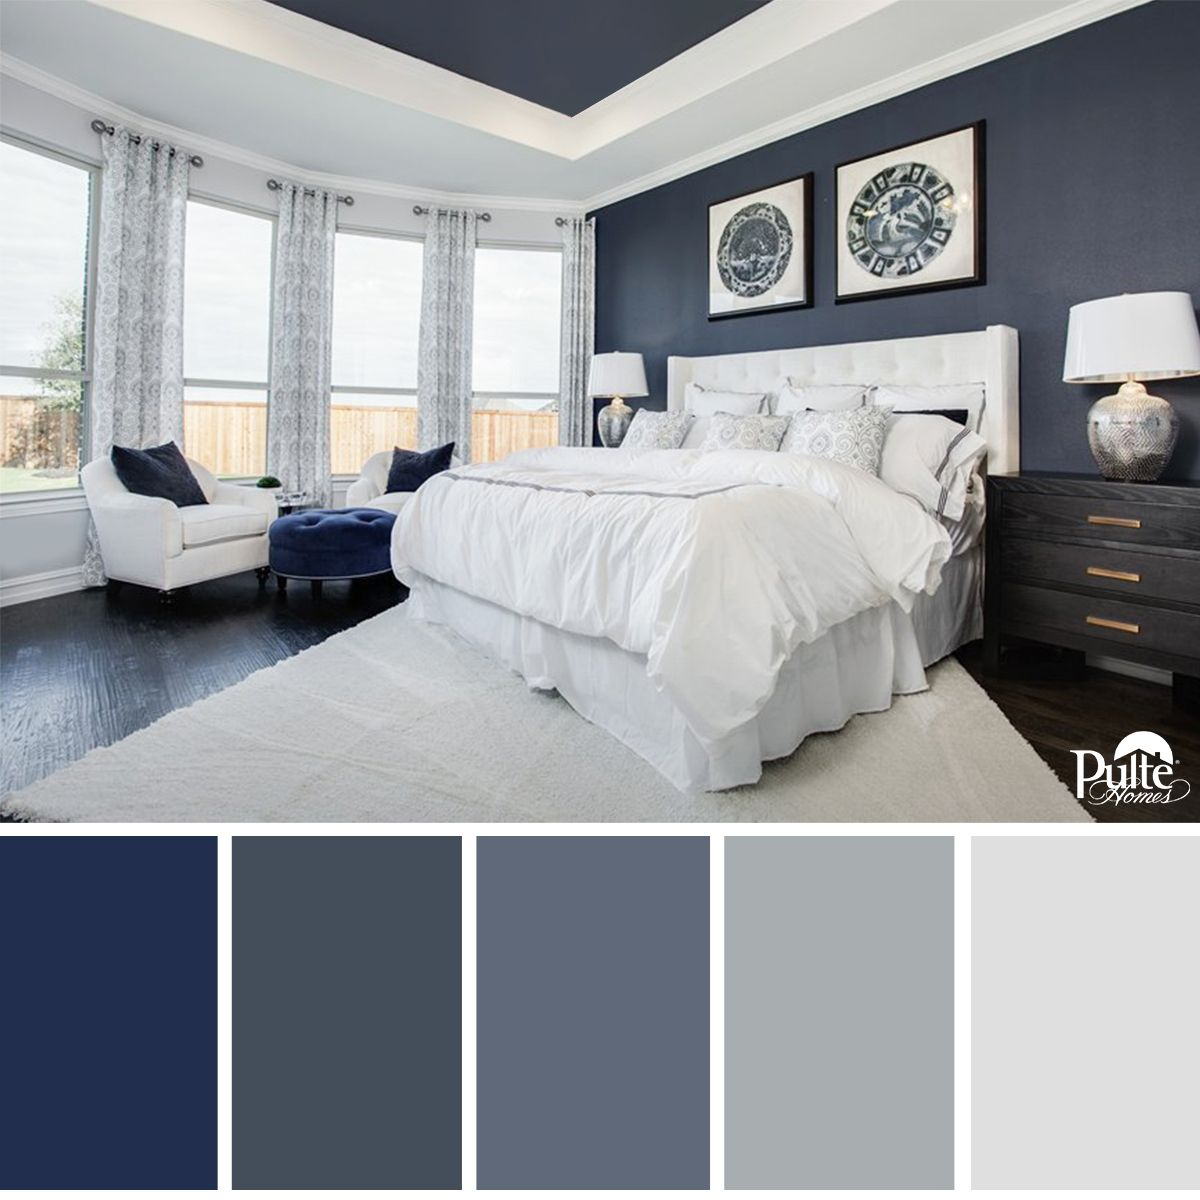 This Bedroom Design Has The Right Idea The Rich Blue Color Palette And Decor Create A Dreamy